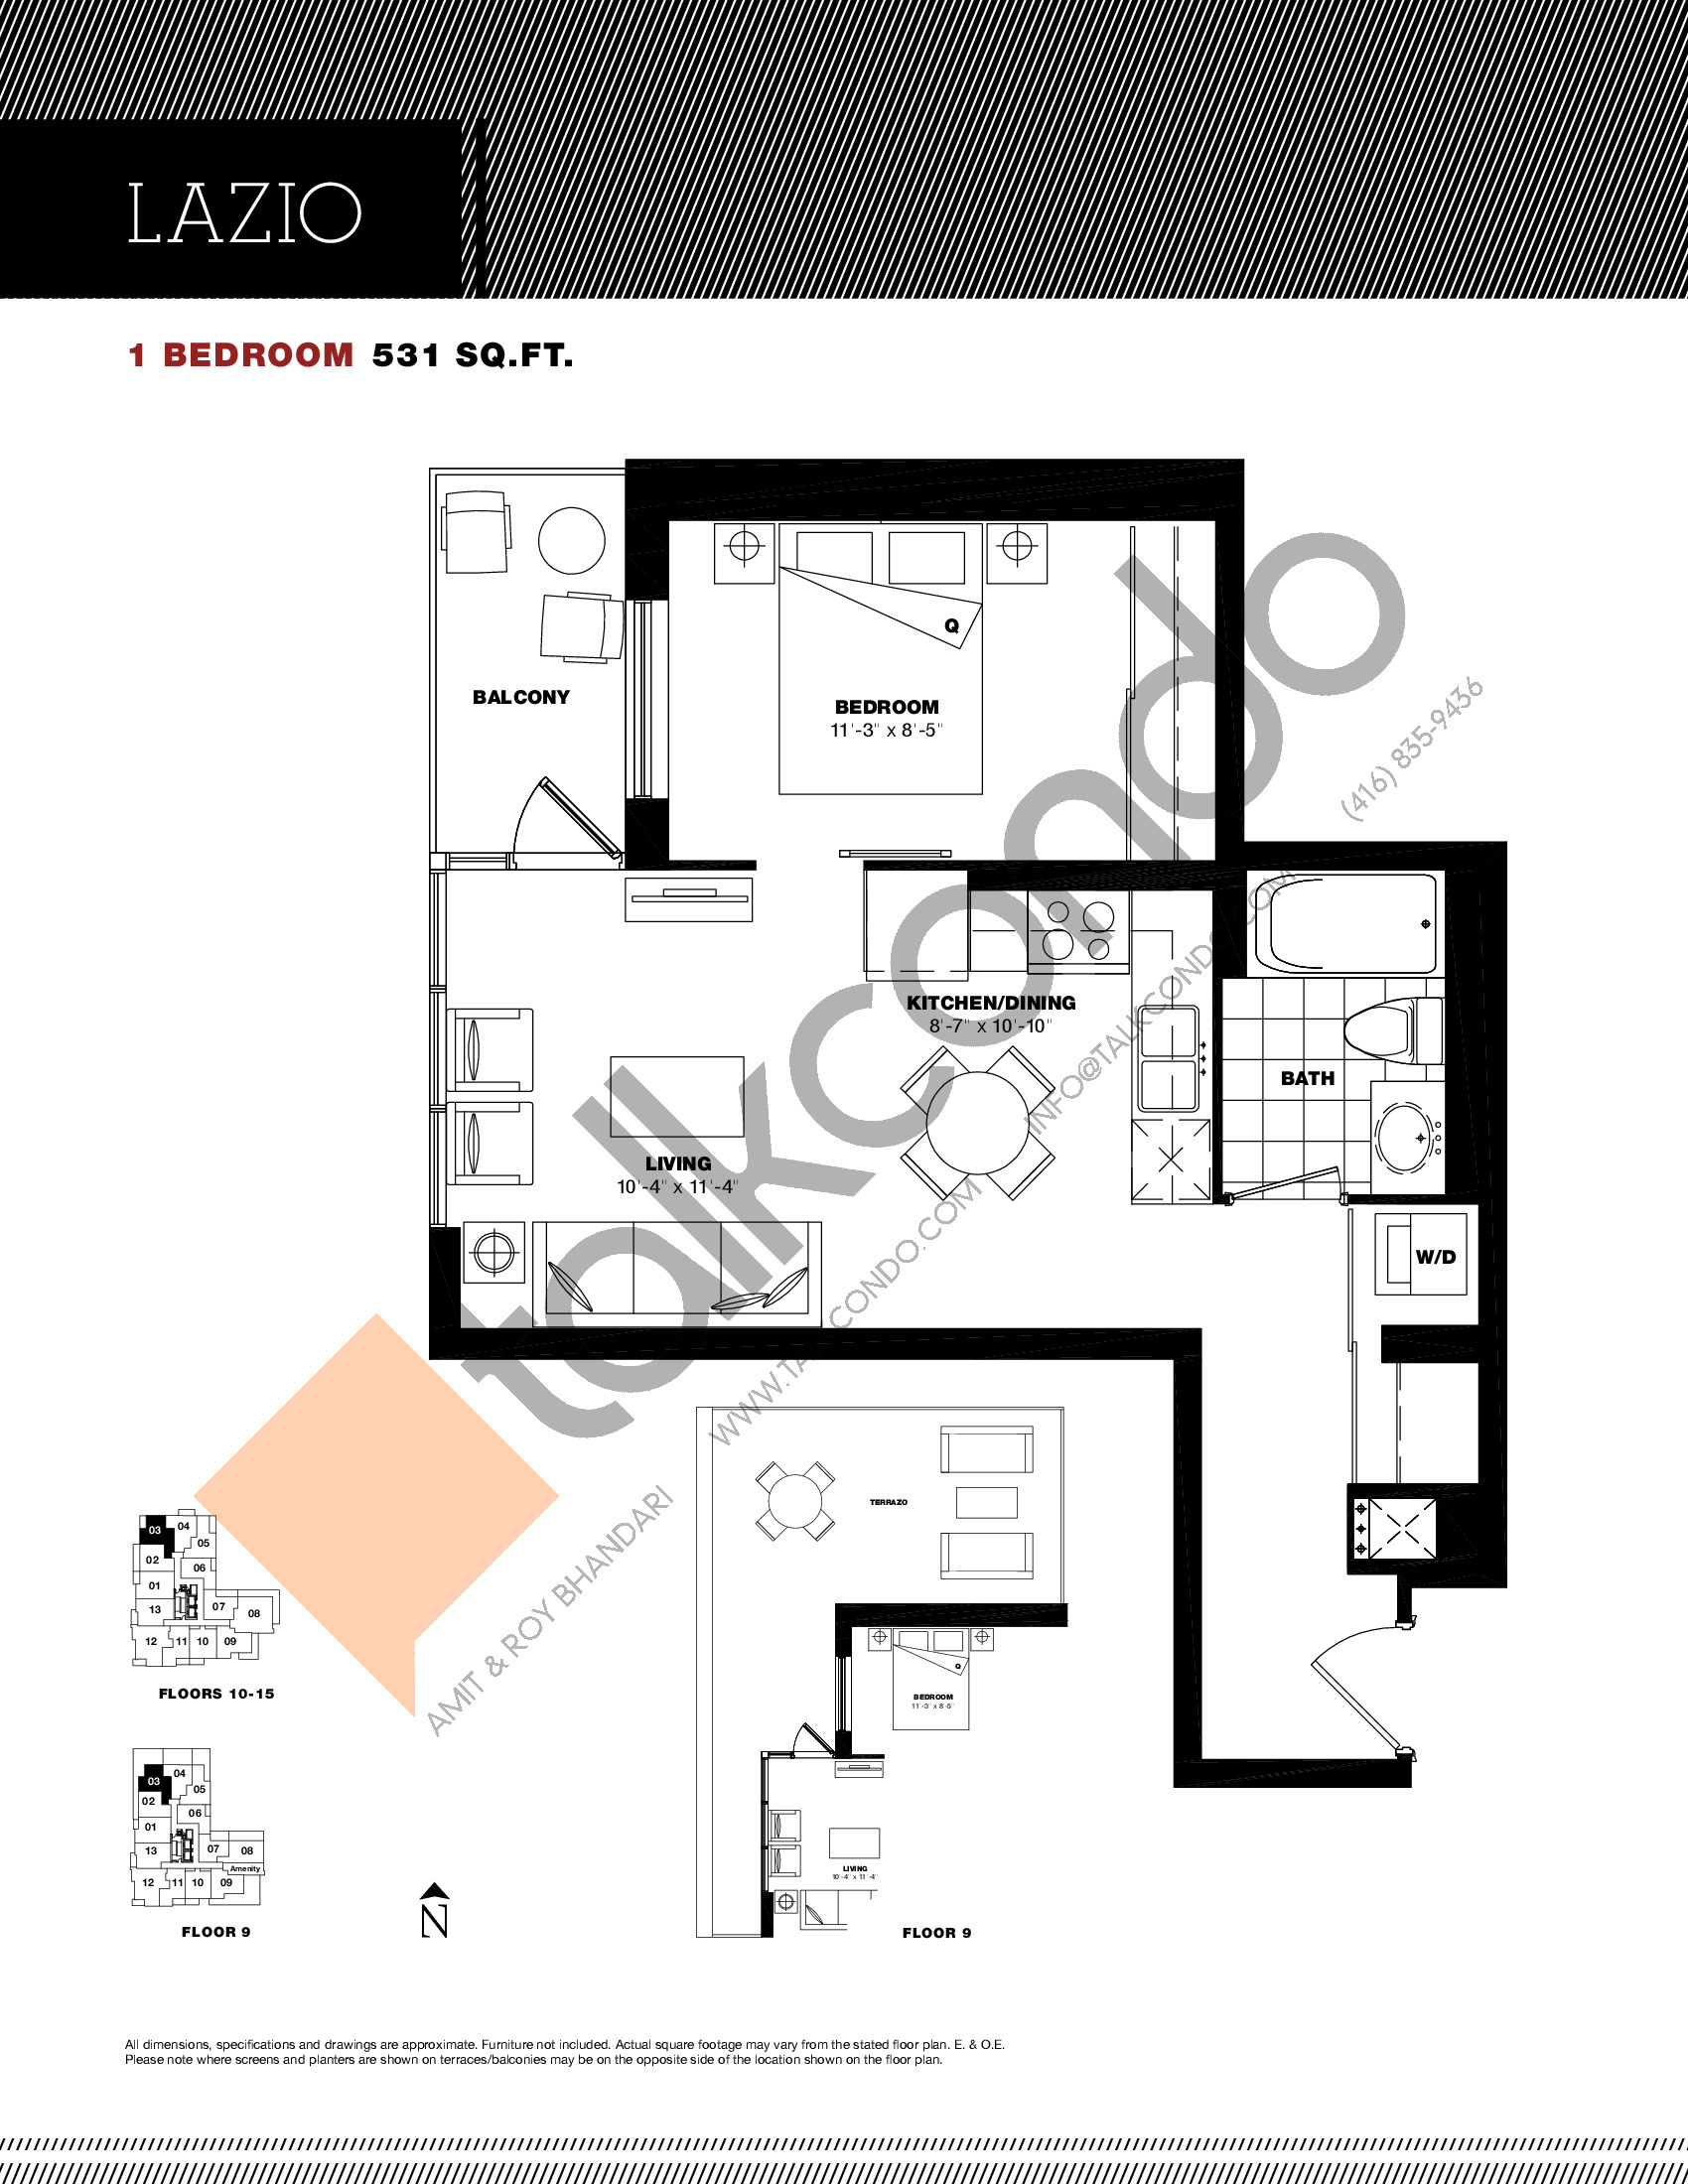 Lazio Floor Plan at Residenze Palazzo at Treviso 3 Condos - 531 sq.ft